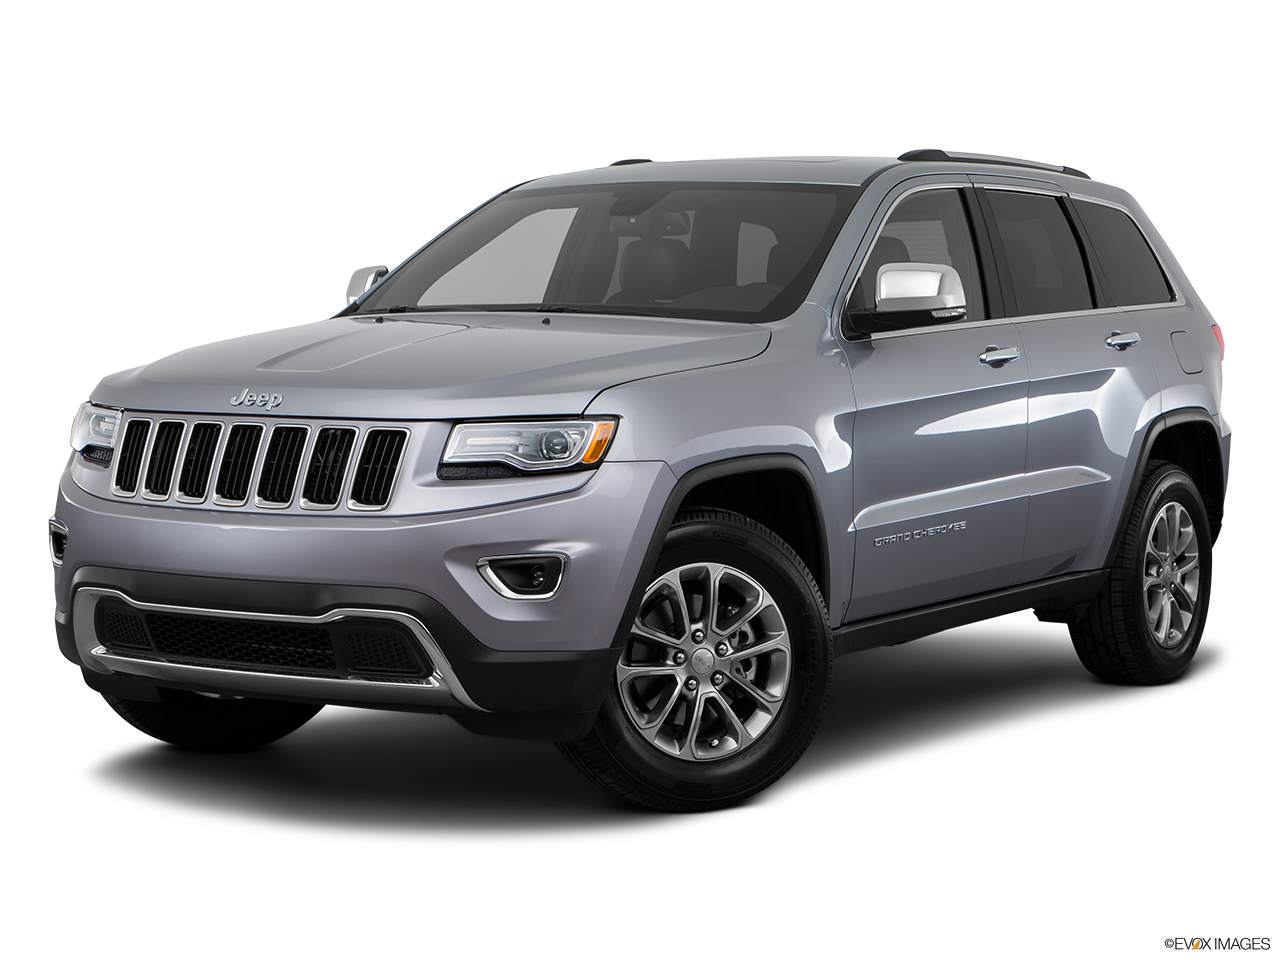 Test Drive A 2016 Jeep Grand Cherokee at Premier Jeep in Tracy